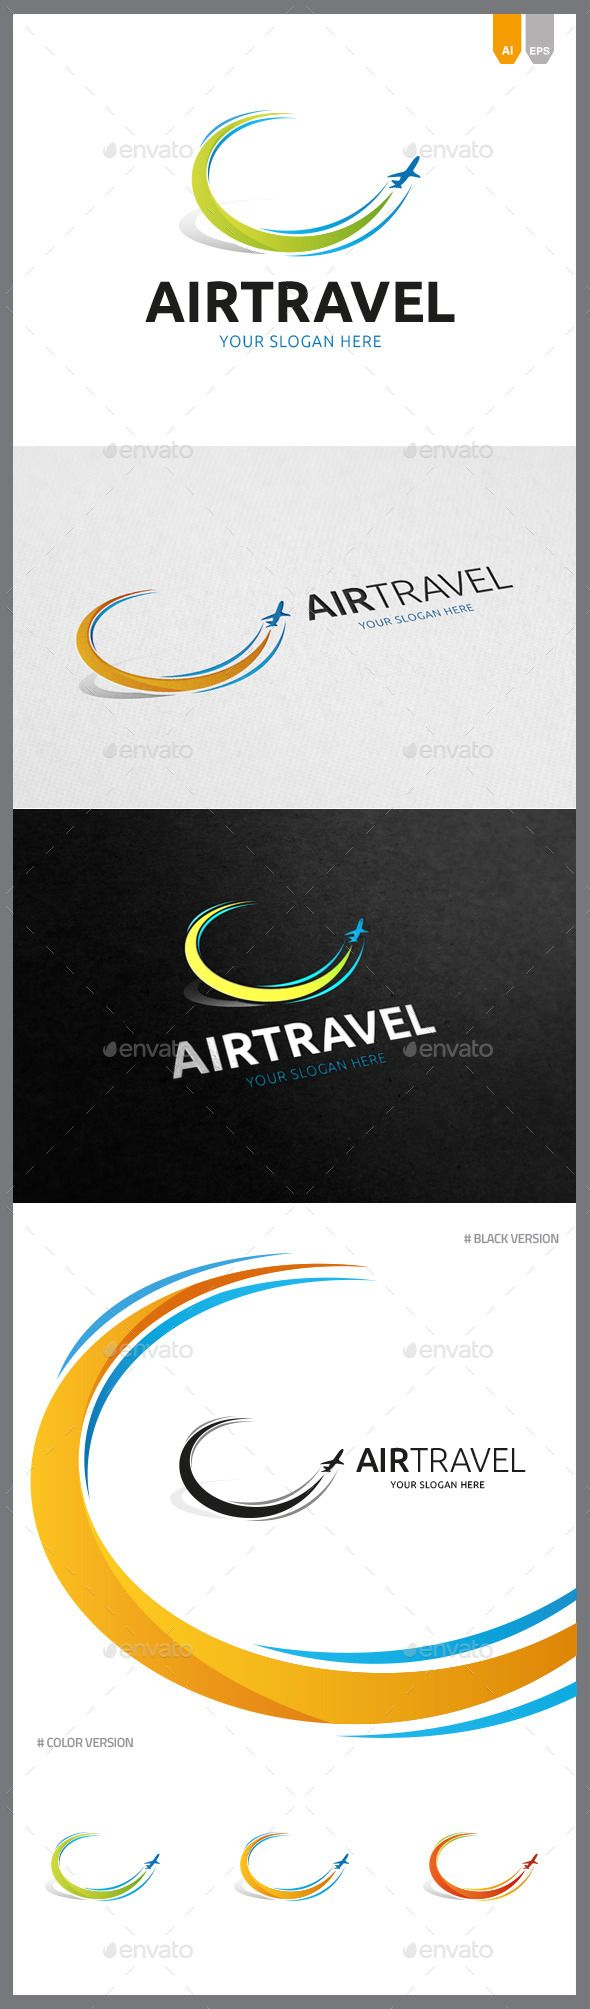 Air Travel  - Logo Design Template Vector #logotype Download it here: http://graphicriver.net/item/air-travel-logo/9167828?s_rank=1477?ref=nesto